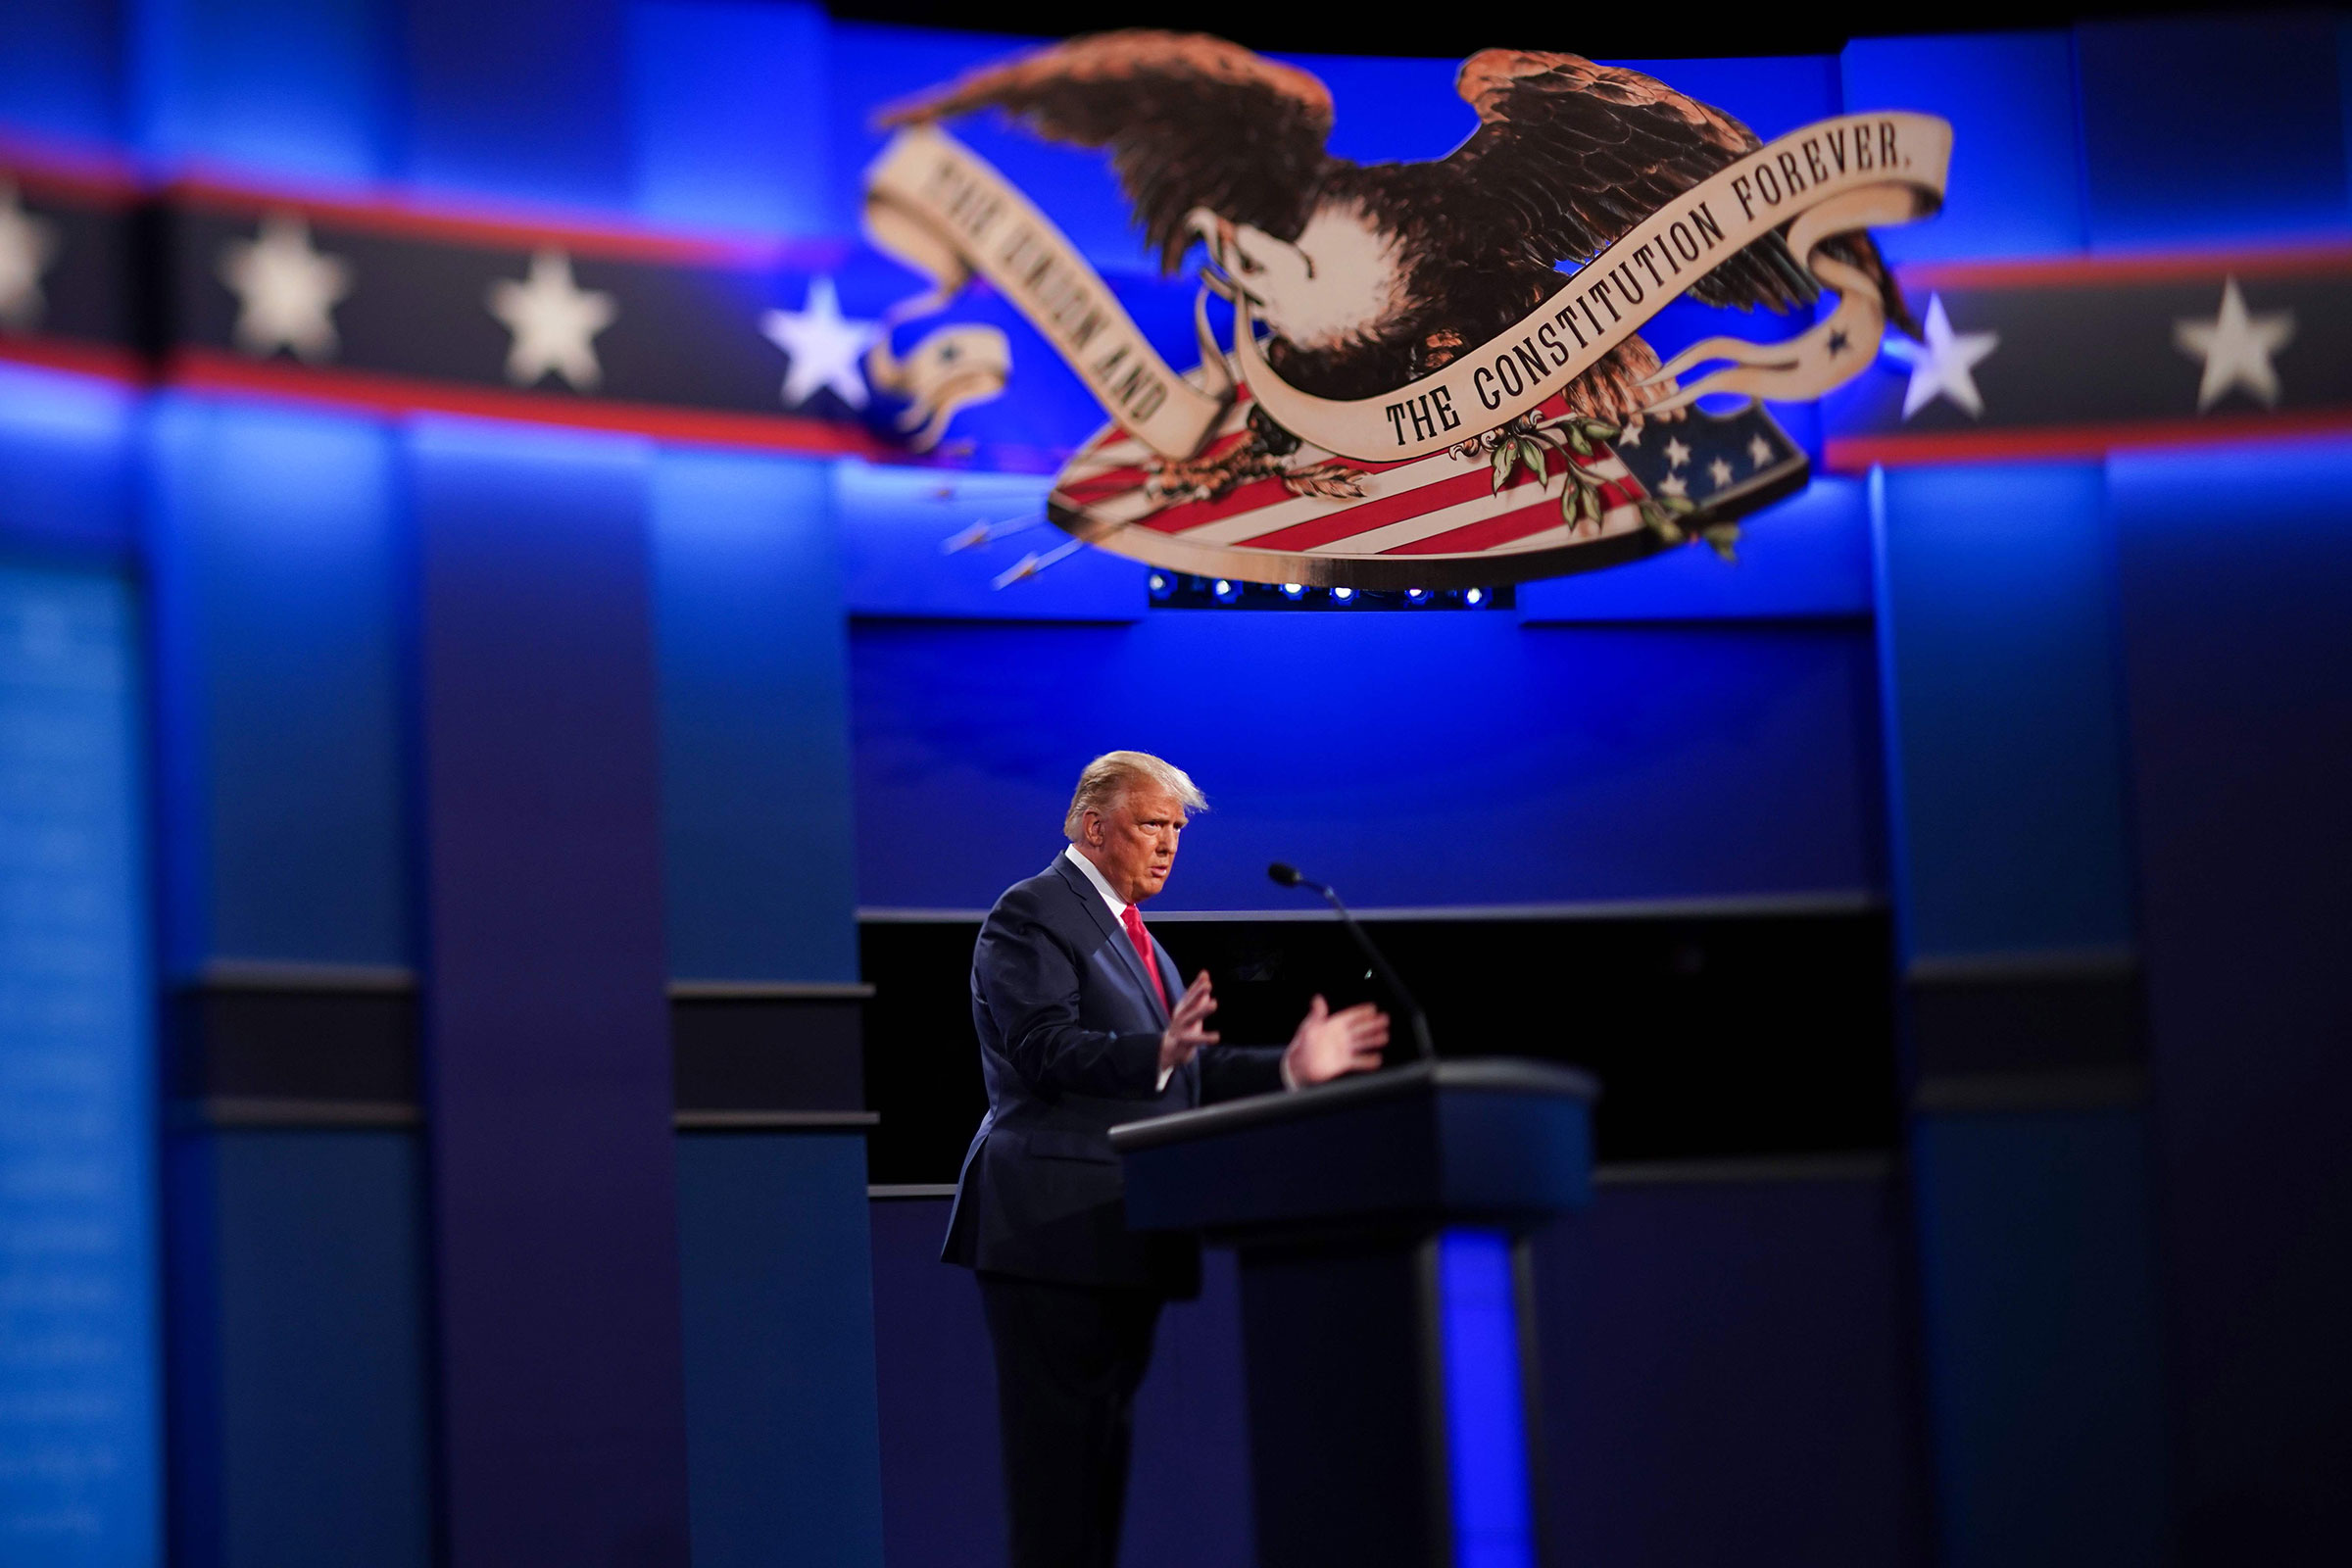 President Donald Trump speaks during the final presidential debate in Nashville, Tenn. on Oct. 22, 2020.